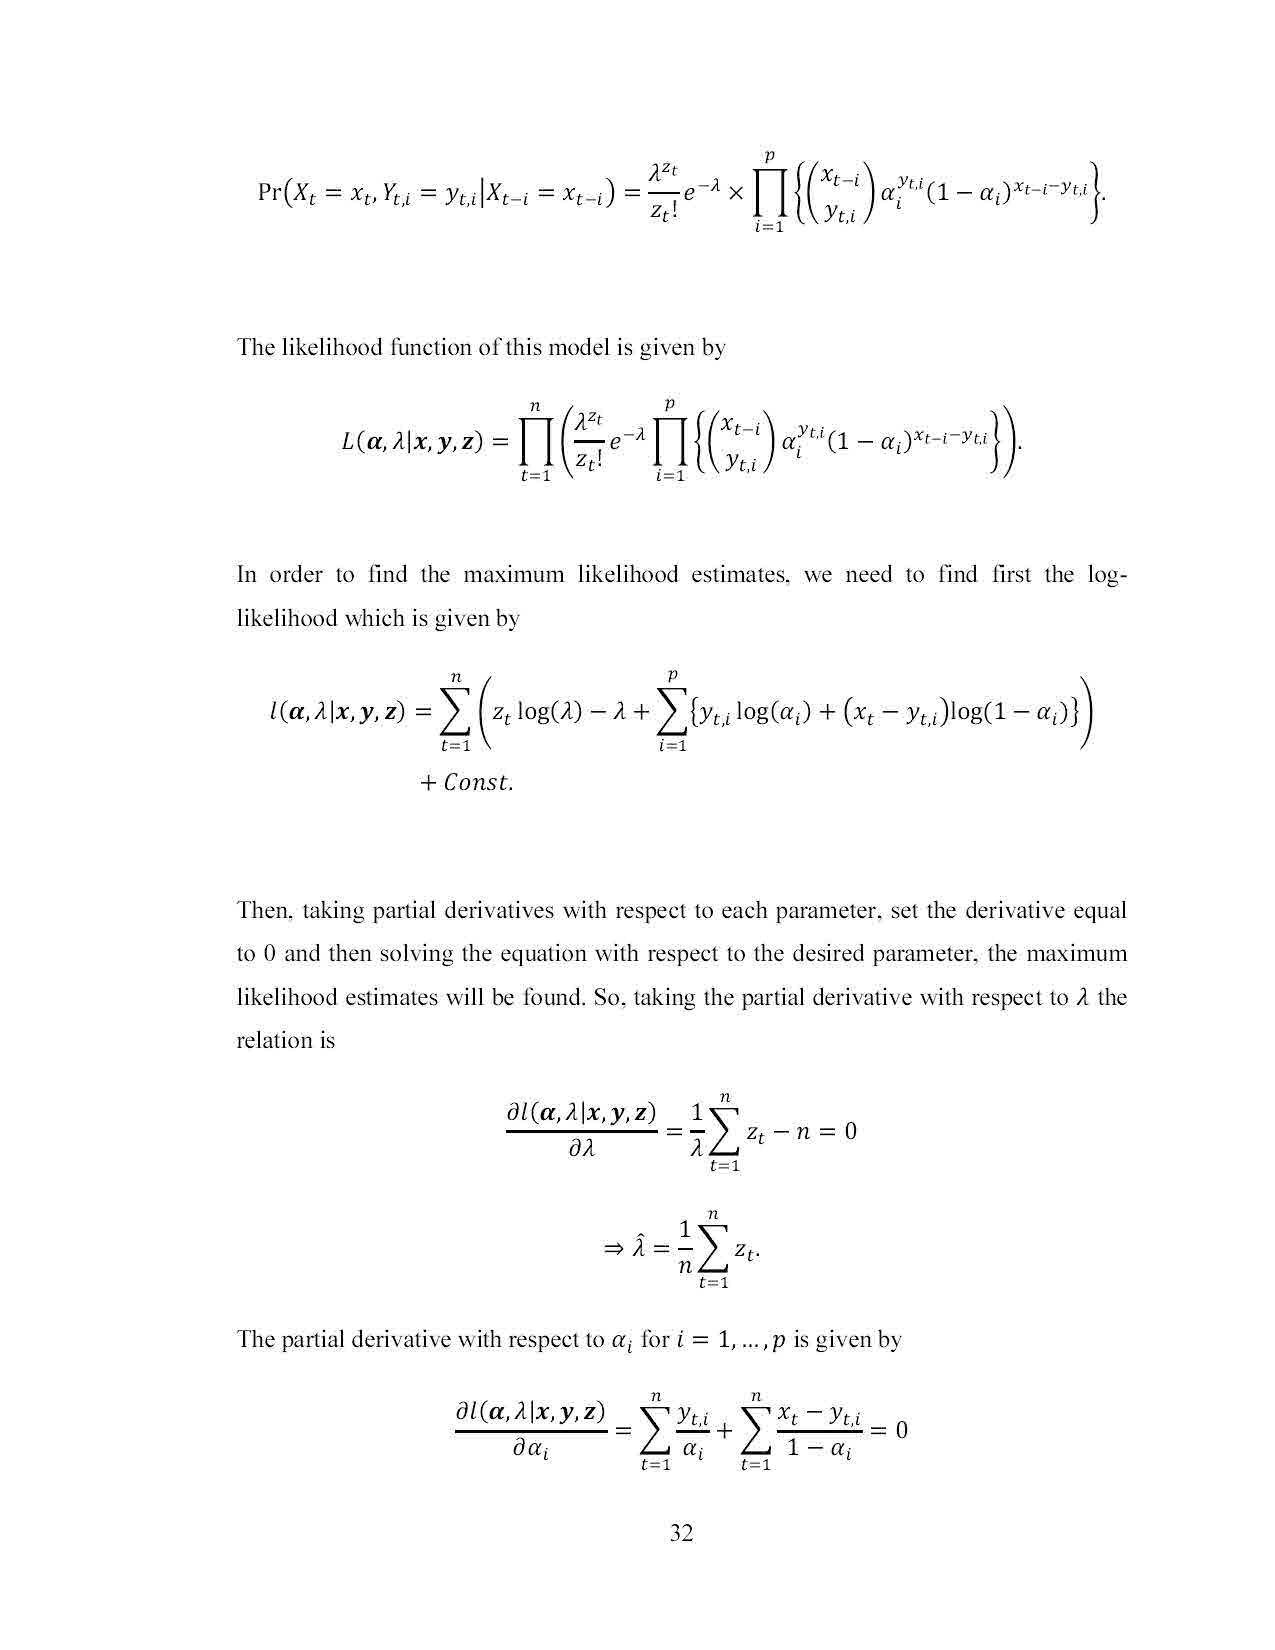 Maths phd thesis